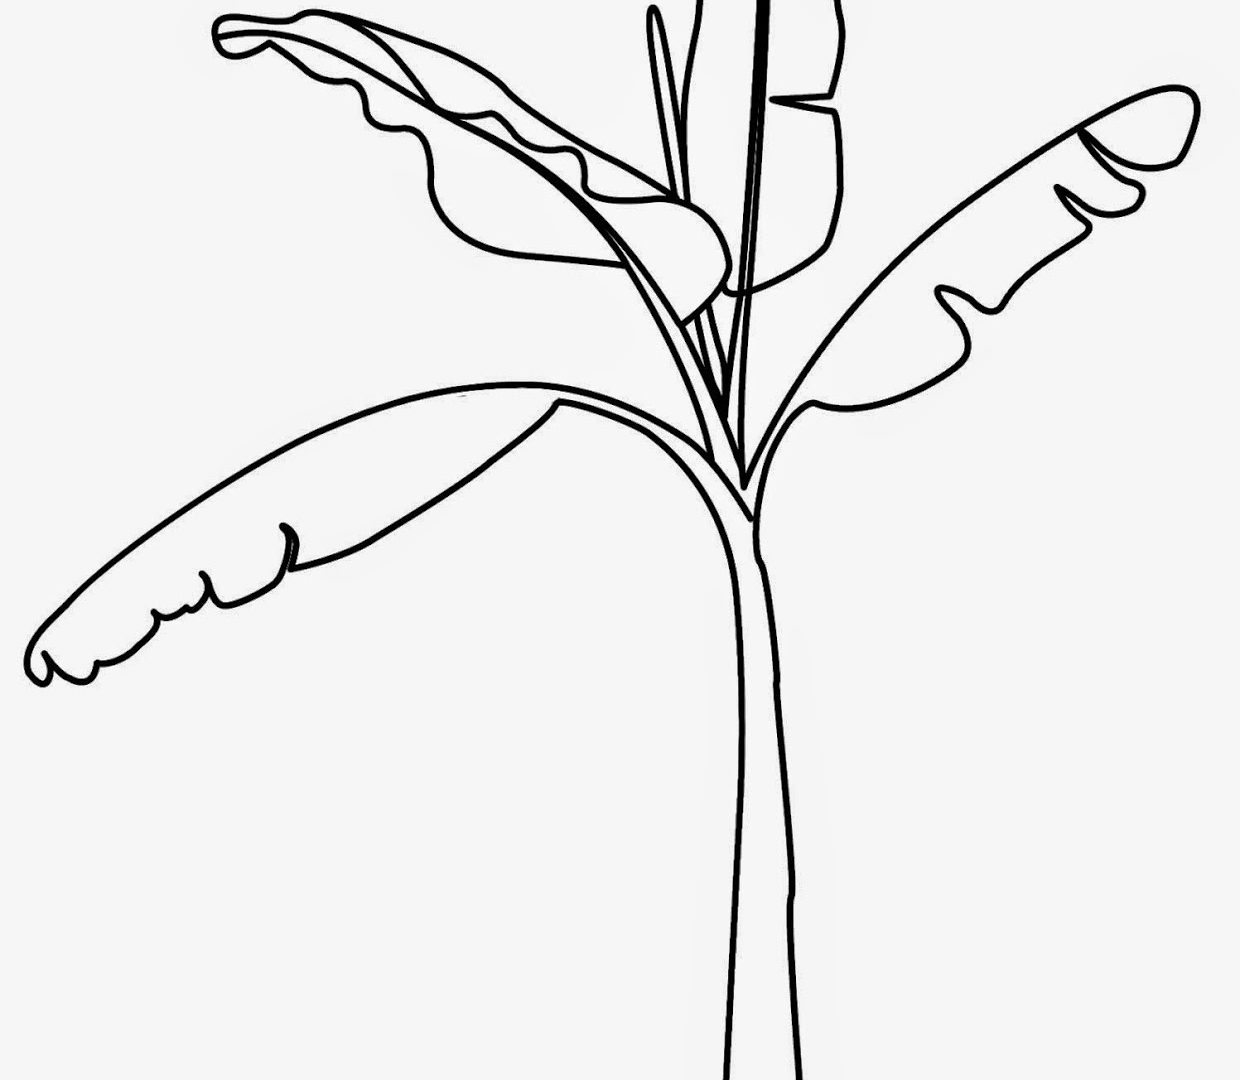 1240x1080 Printable Tree Coloring Pages Pictures Of Banana Trees To Download